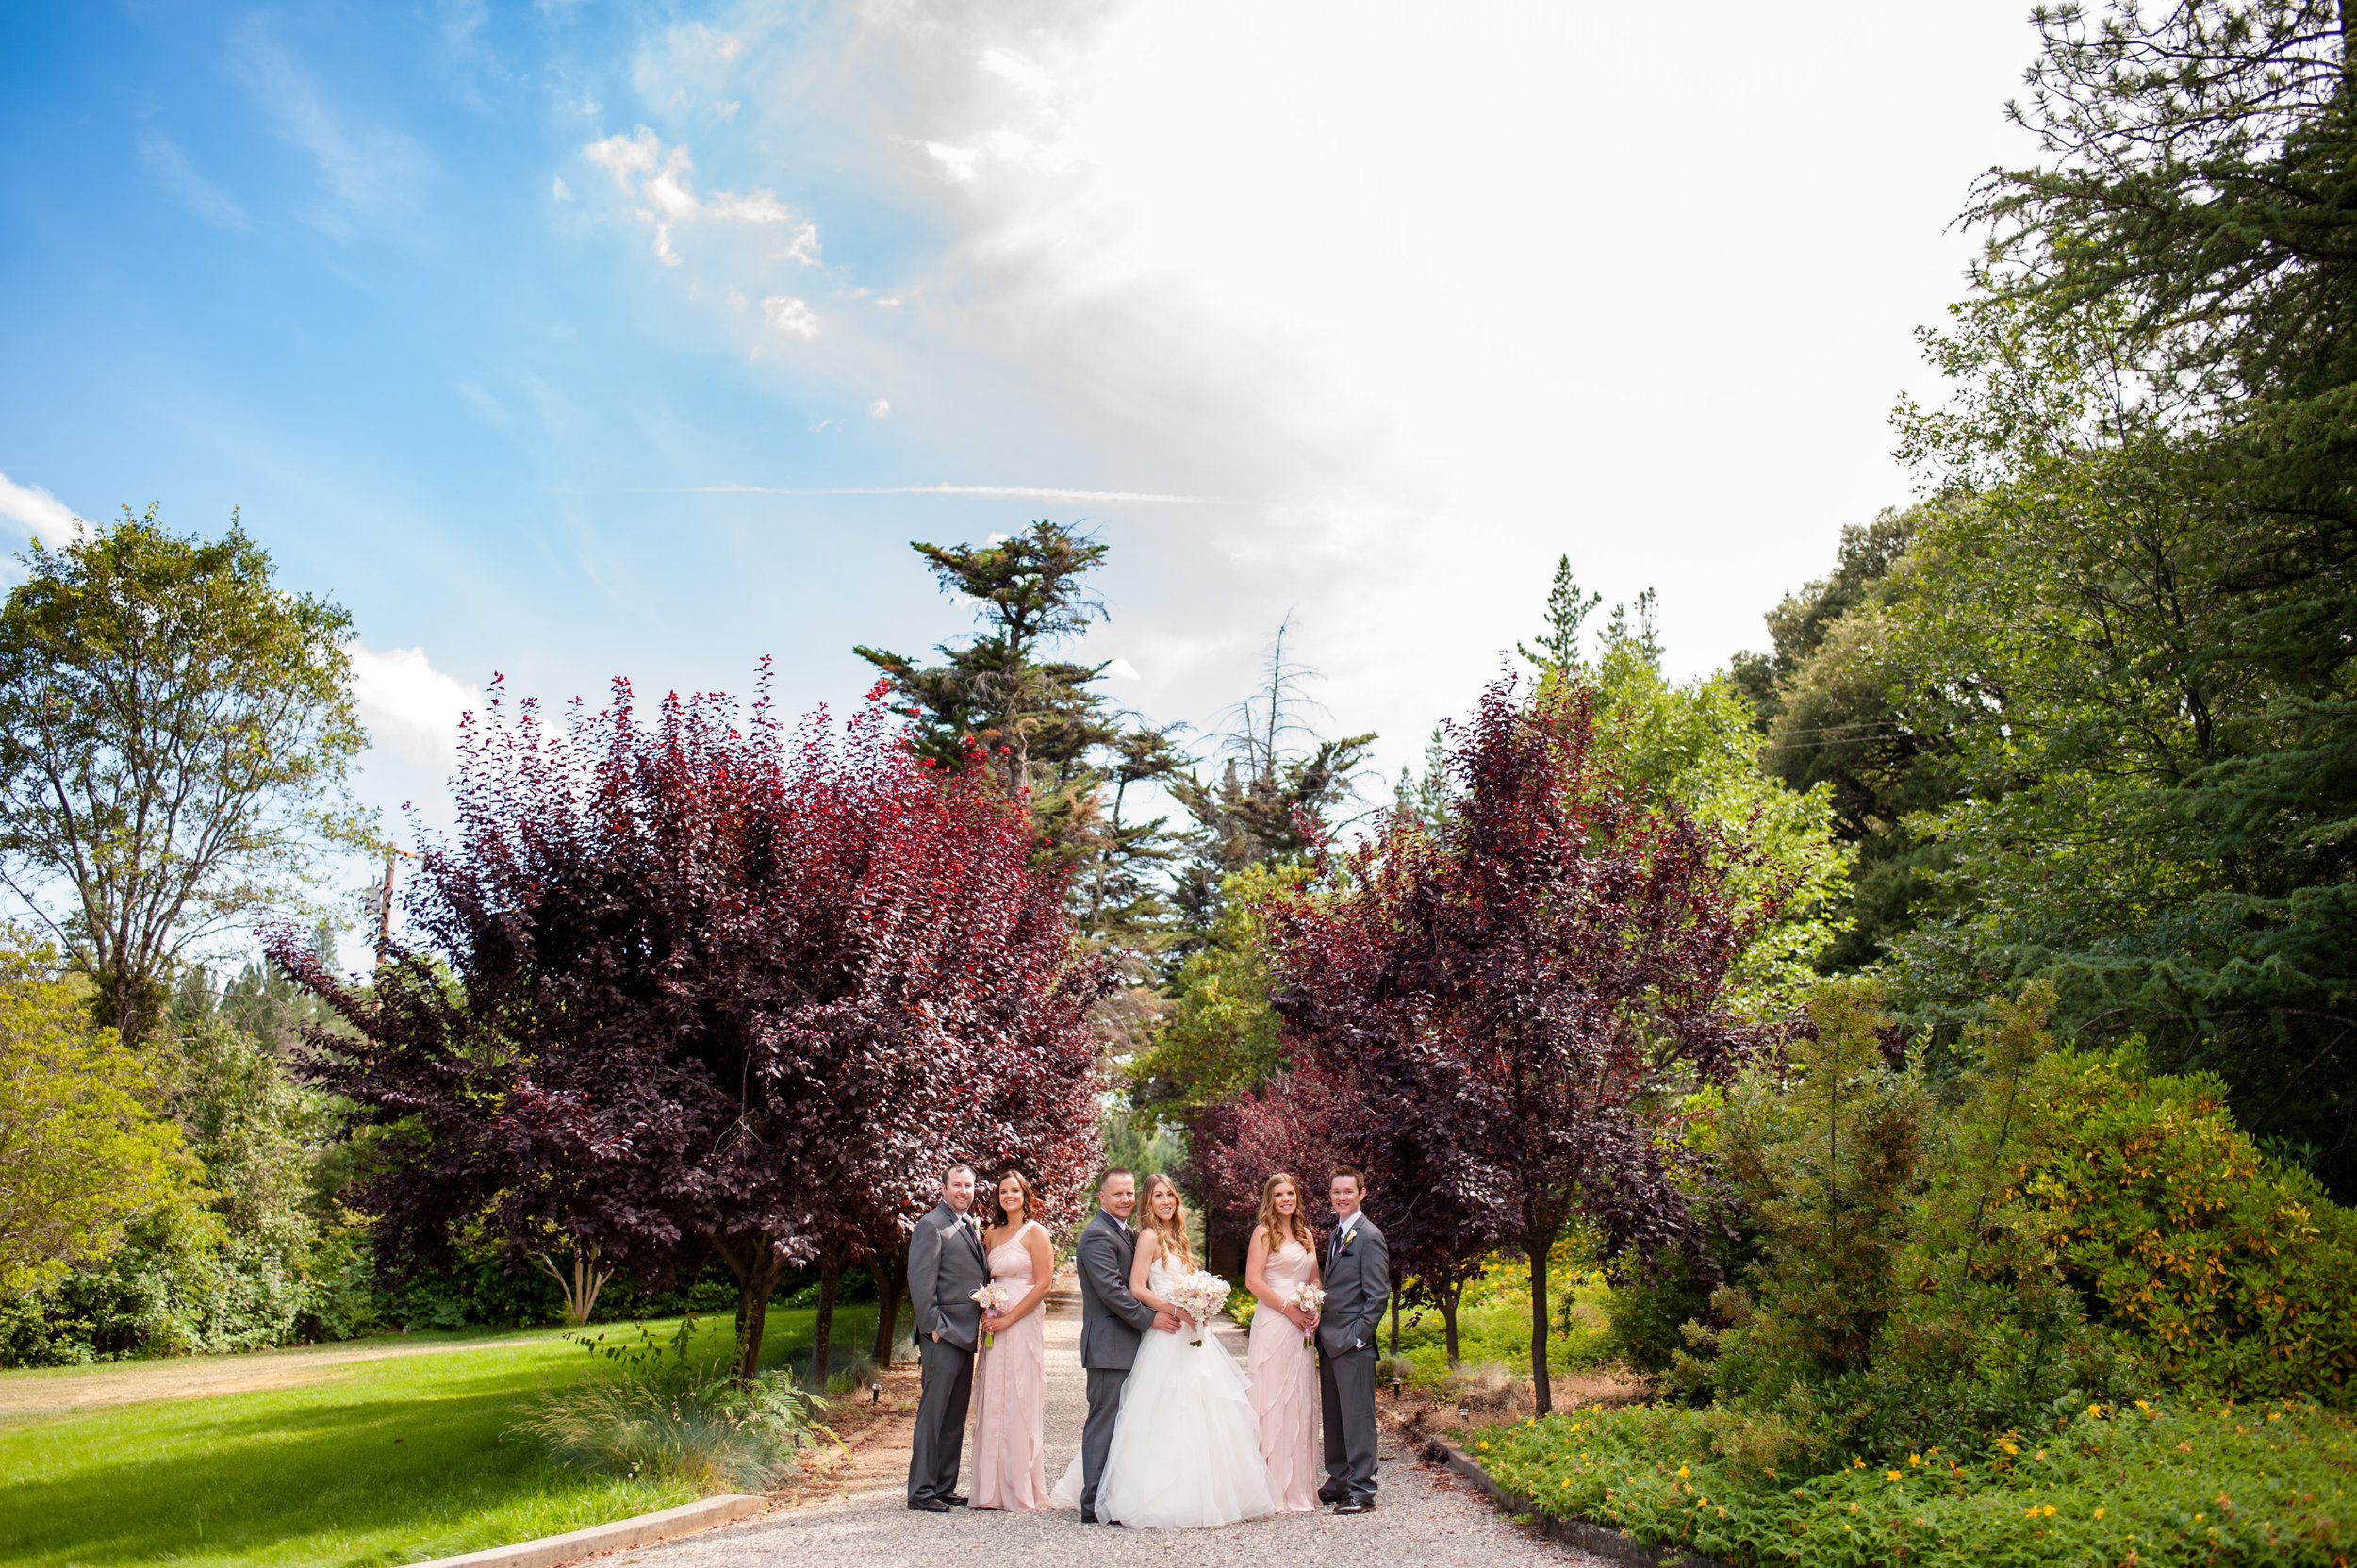 Beautiful bridal party photo at the entrance of the Monte Verde Inn in Foresthill, California.